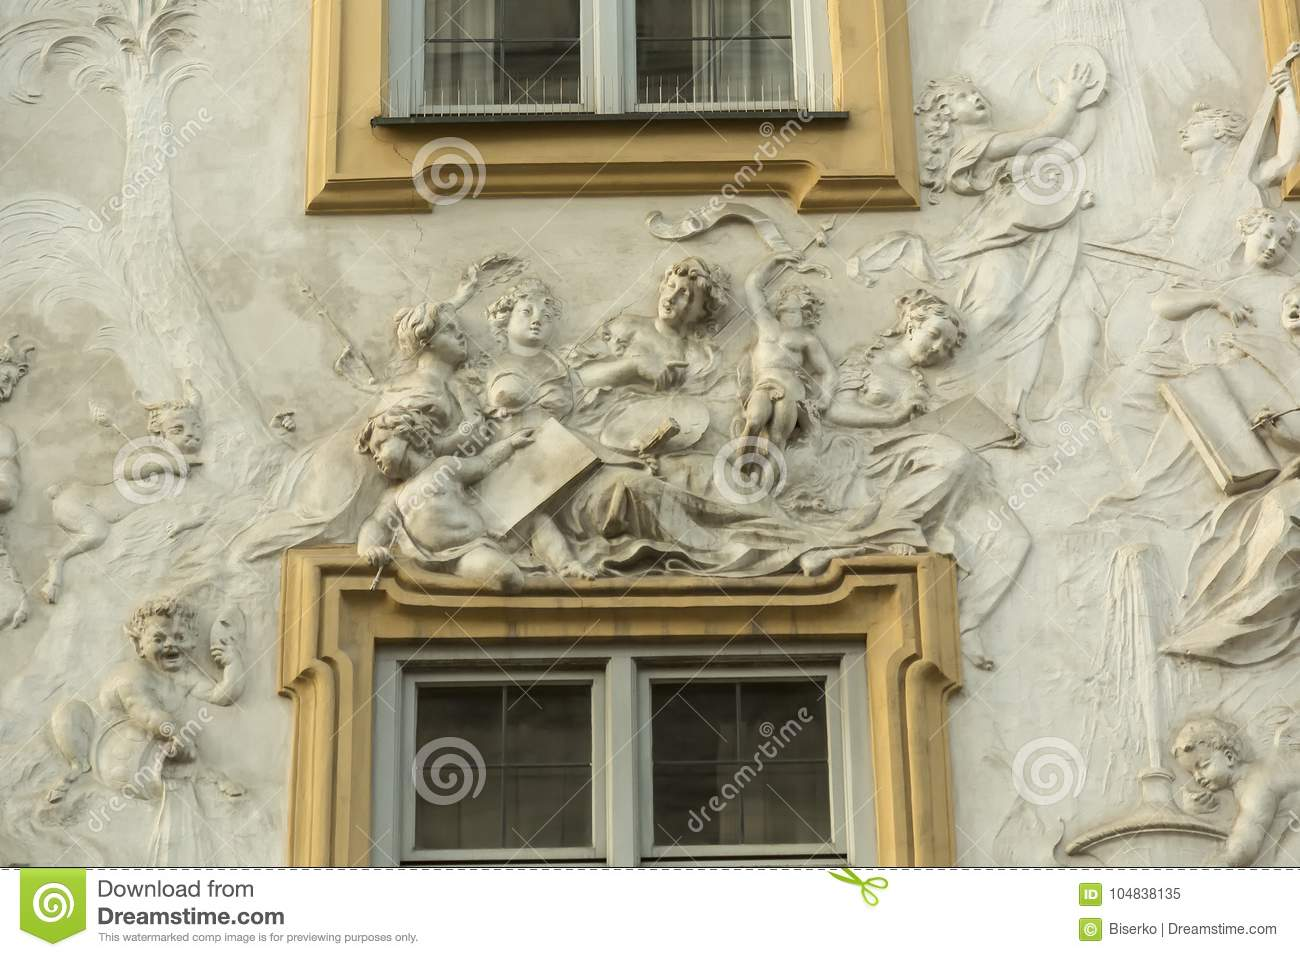 Decoration At The Facade Of The Old Villa Stock Image - Image of ...